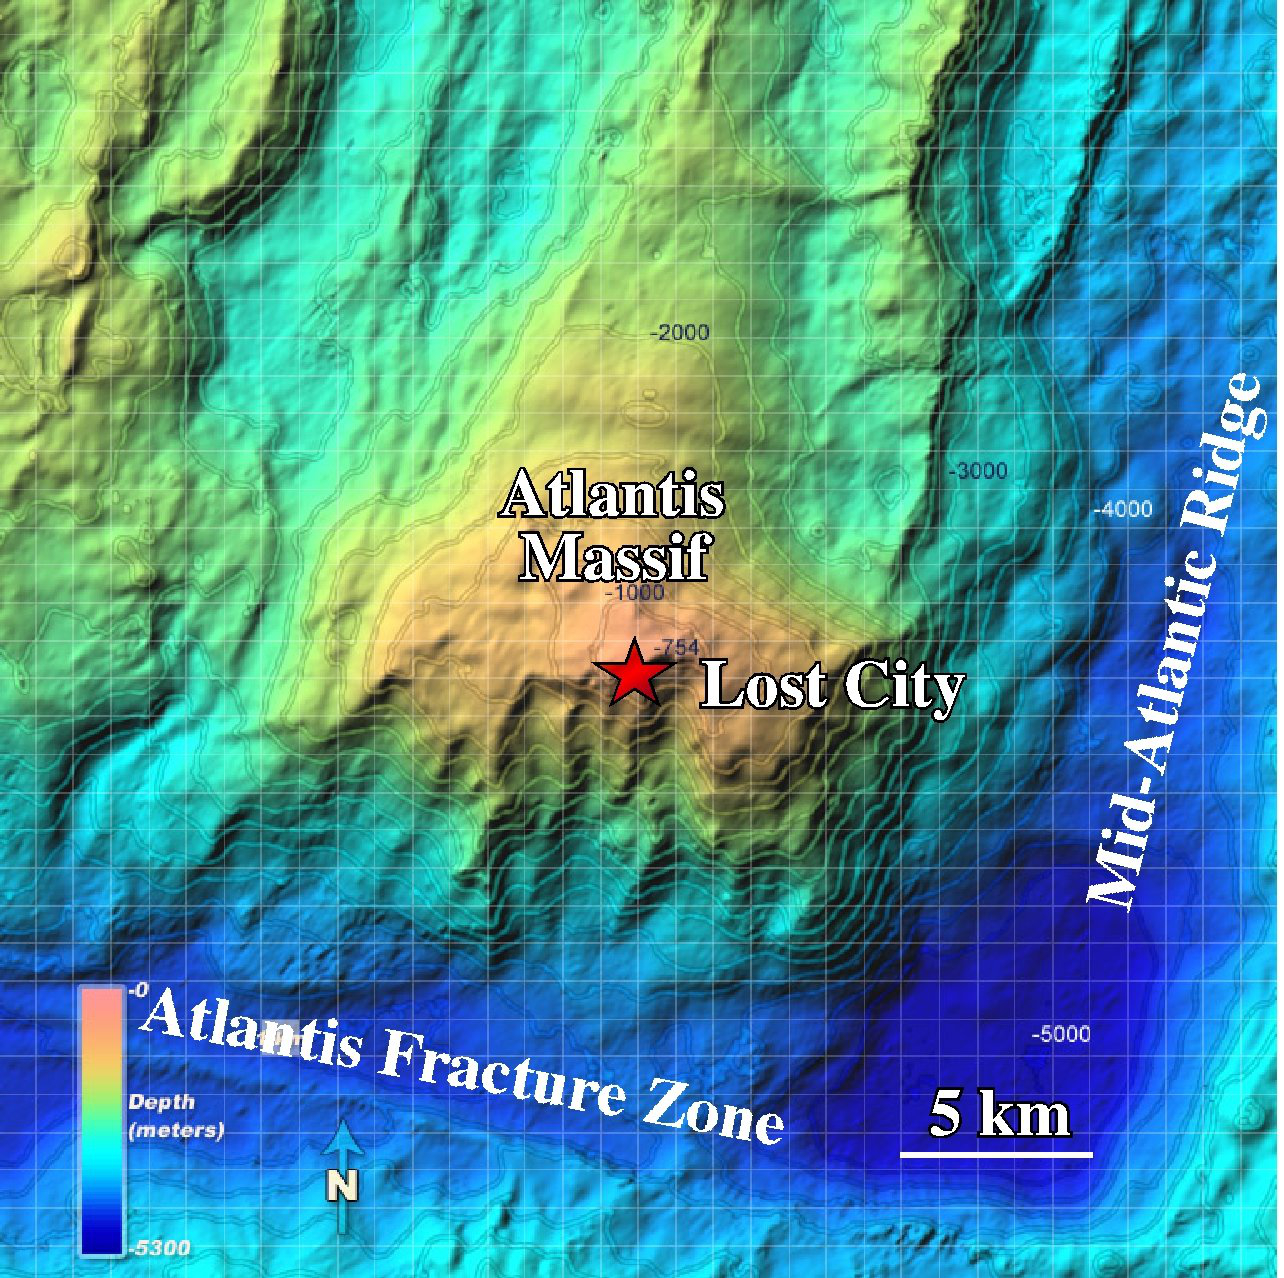 A second site that the NAI team is studying for rock-powered microbes is the Lost City, in the subterranean Atlantis Massif. Credit: NOAA. Image credit: None